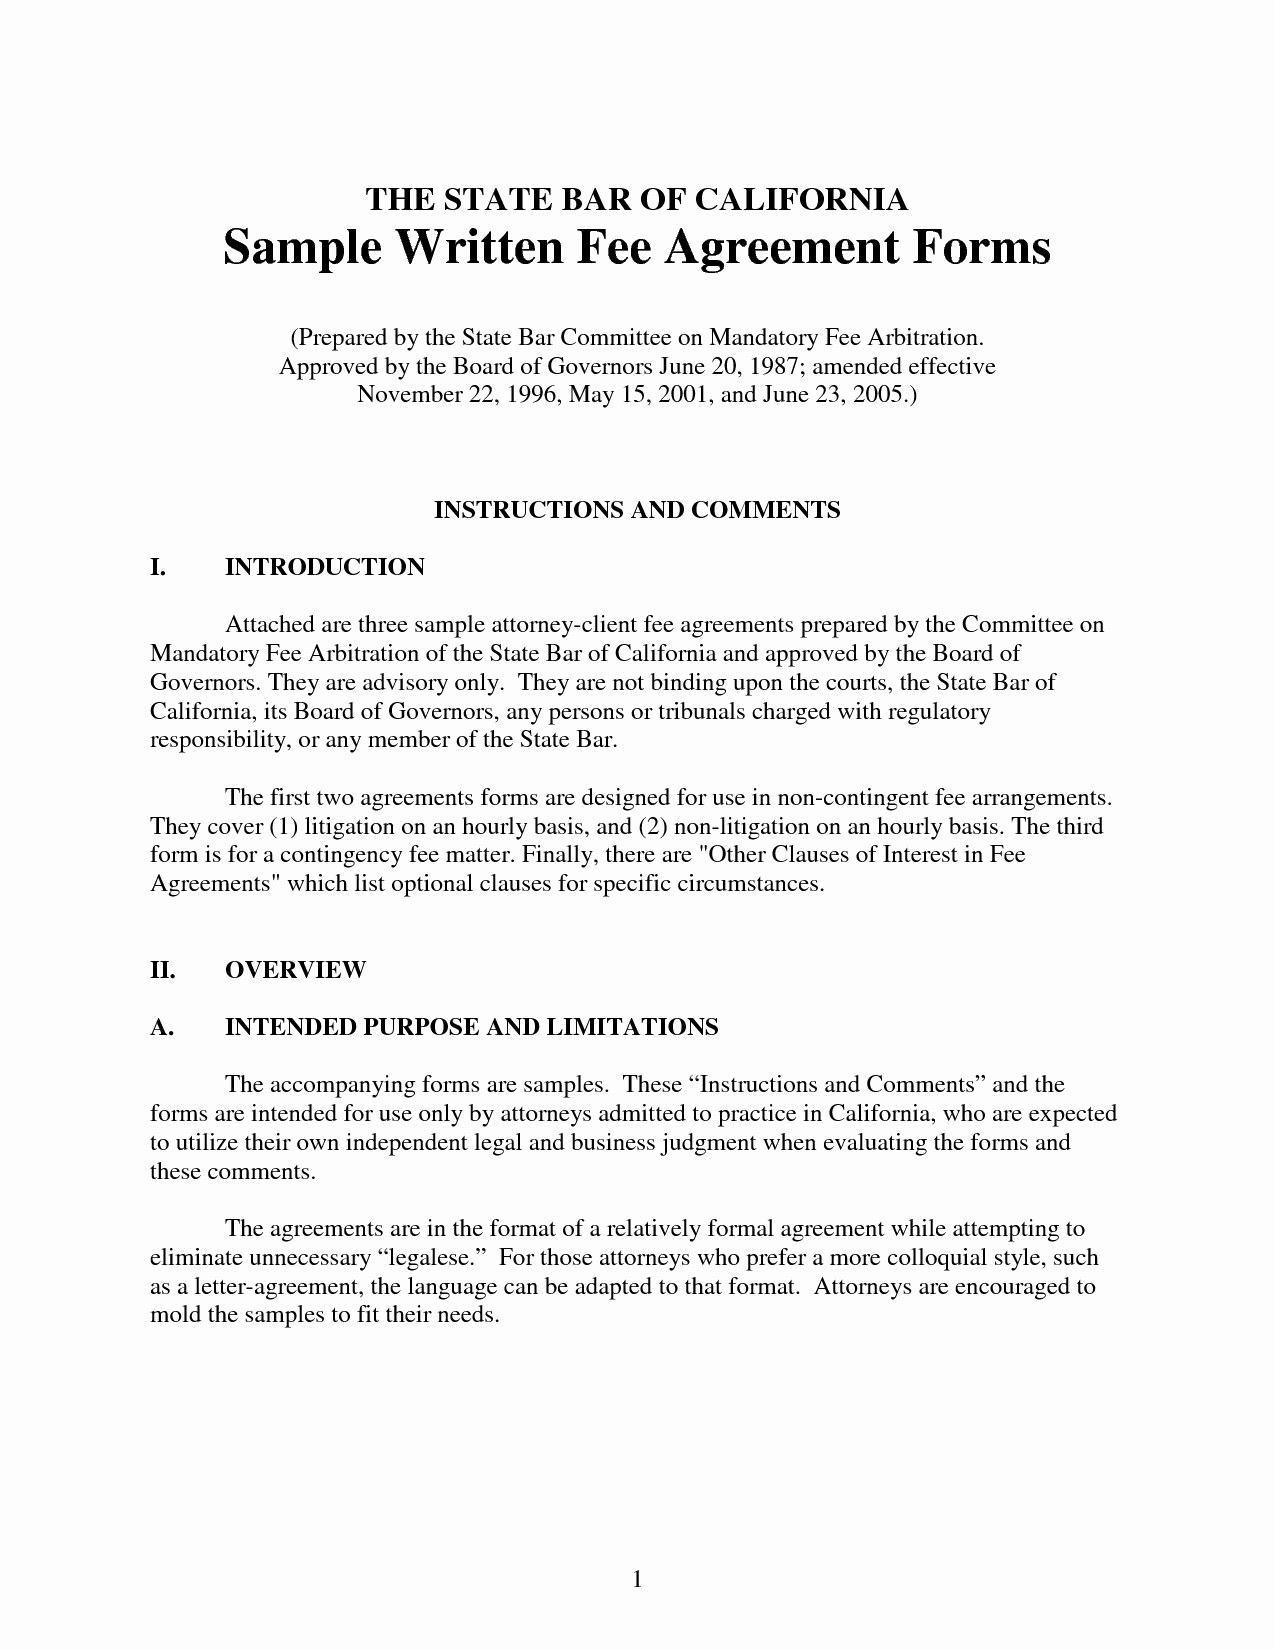 Legal Letter format Template Luxury Legal Agreement form by Tricky Legal Agreement forms